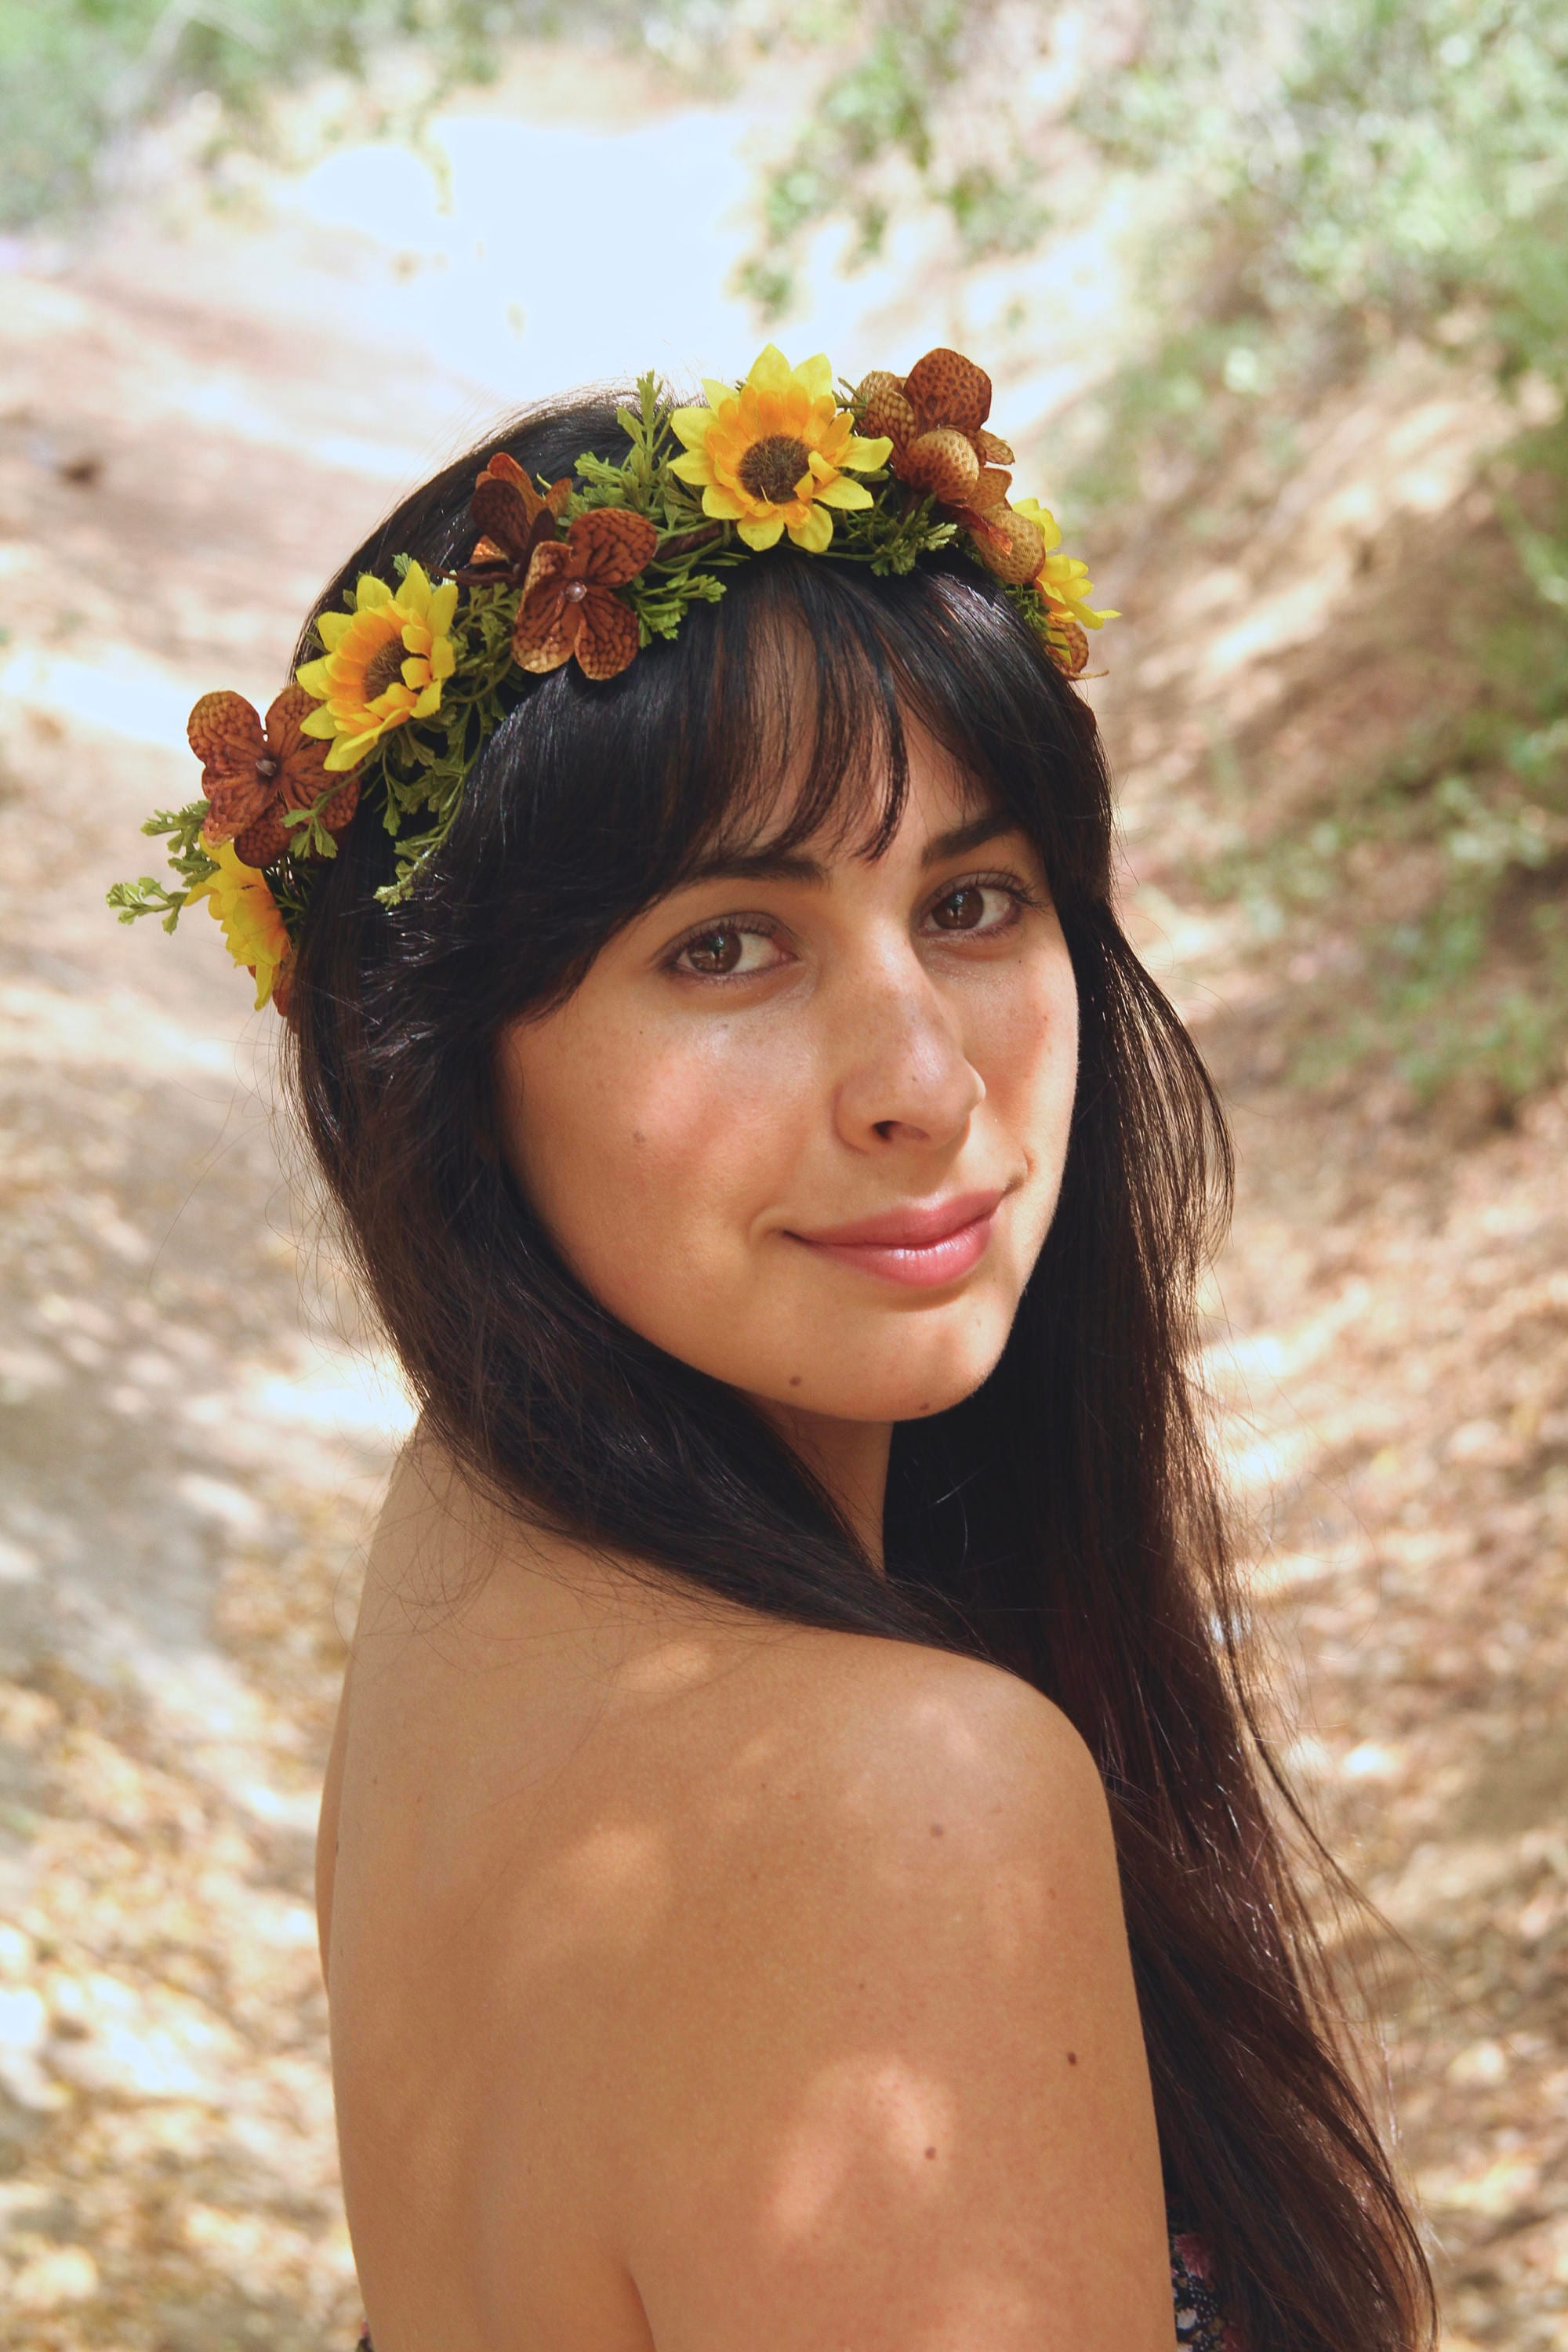 Flower crown for wedding if a completely full head of florals isnt flower crown wedding sunflower crown bridal crown wedding crown sunflower wedding flower crown adult fall wedding izmirmasajfo